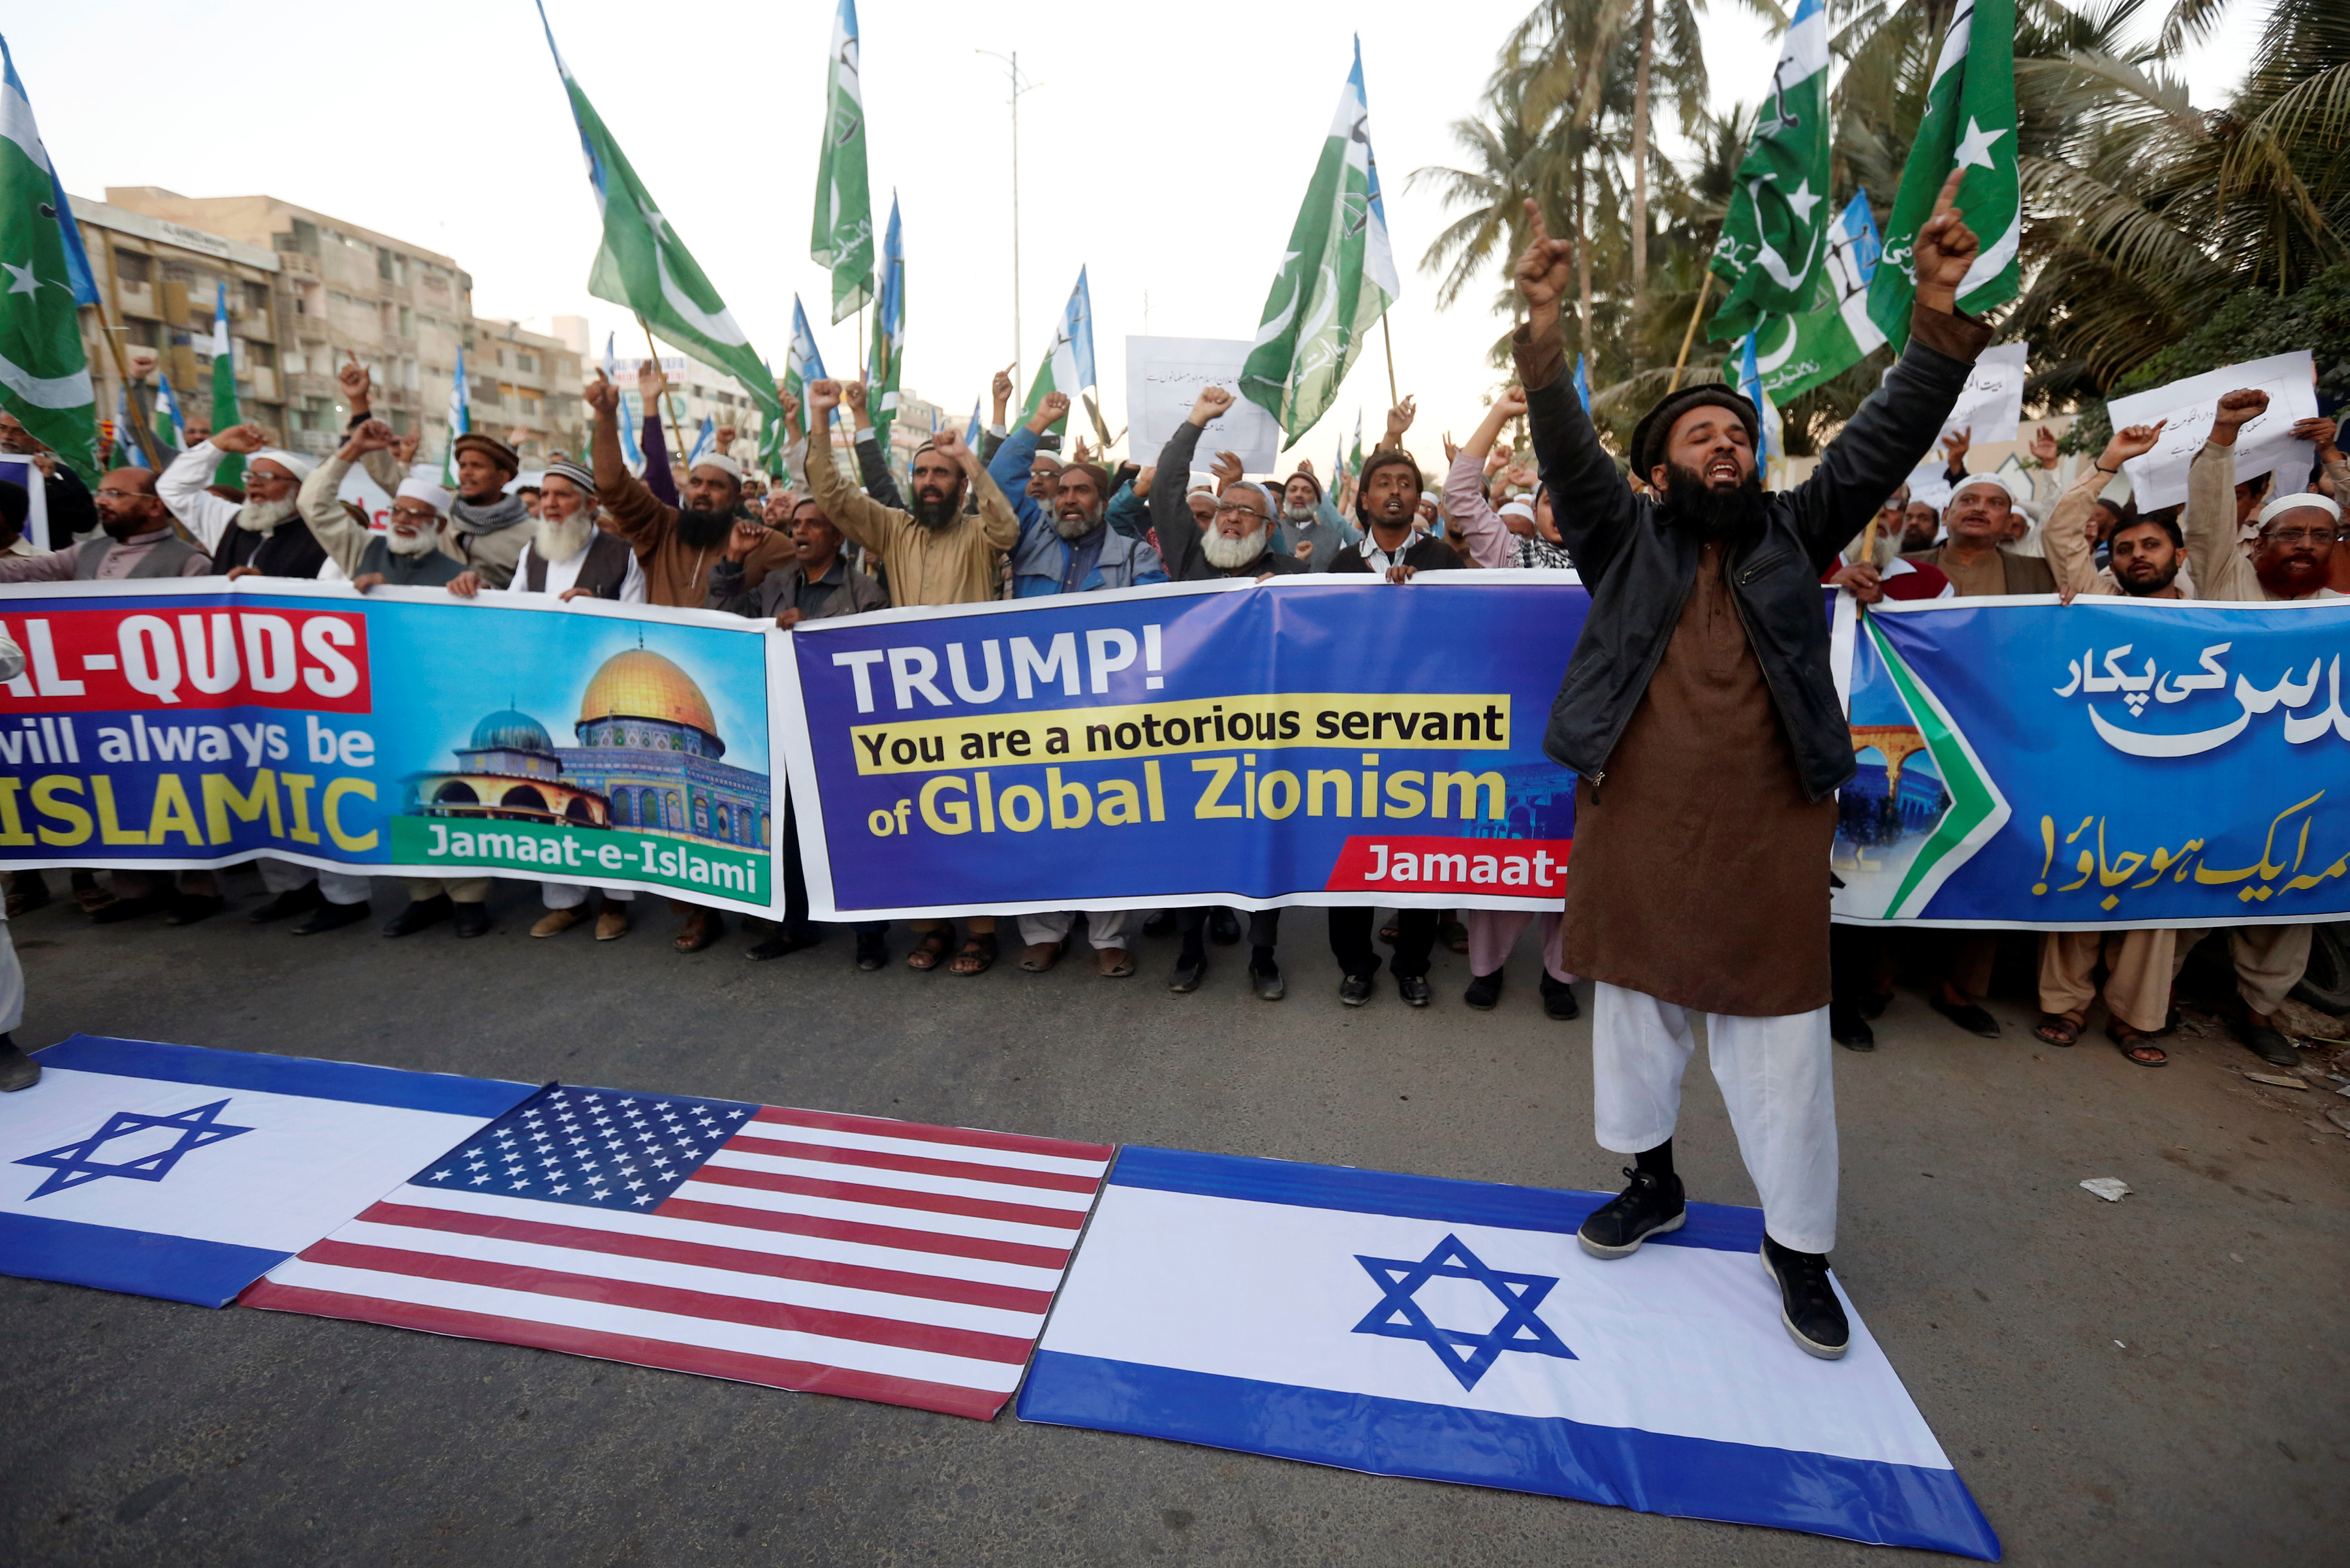 A supporter of religious and political party Jamaat-e-Islami chants slogans with others as he stands on Israeli flag during a protest against U.S. President Donald Trump's decision to recognize Jerusalem as the capital of Israel, in Karachi, Pakistan...